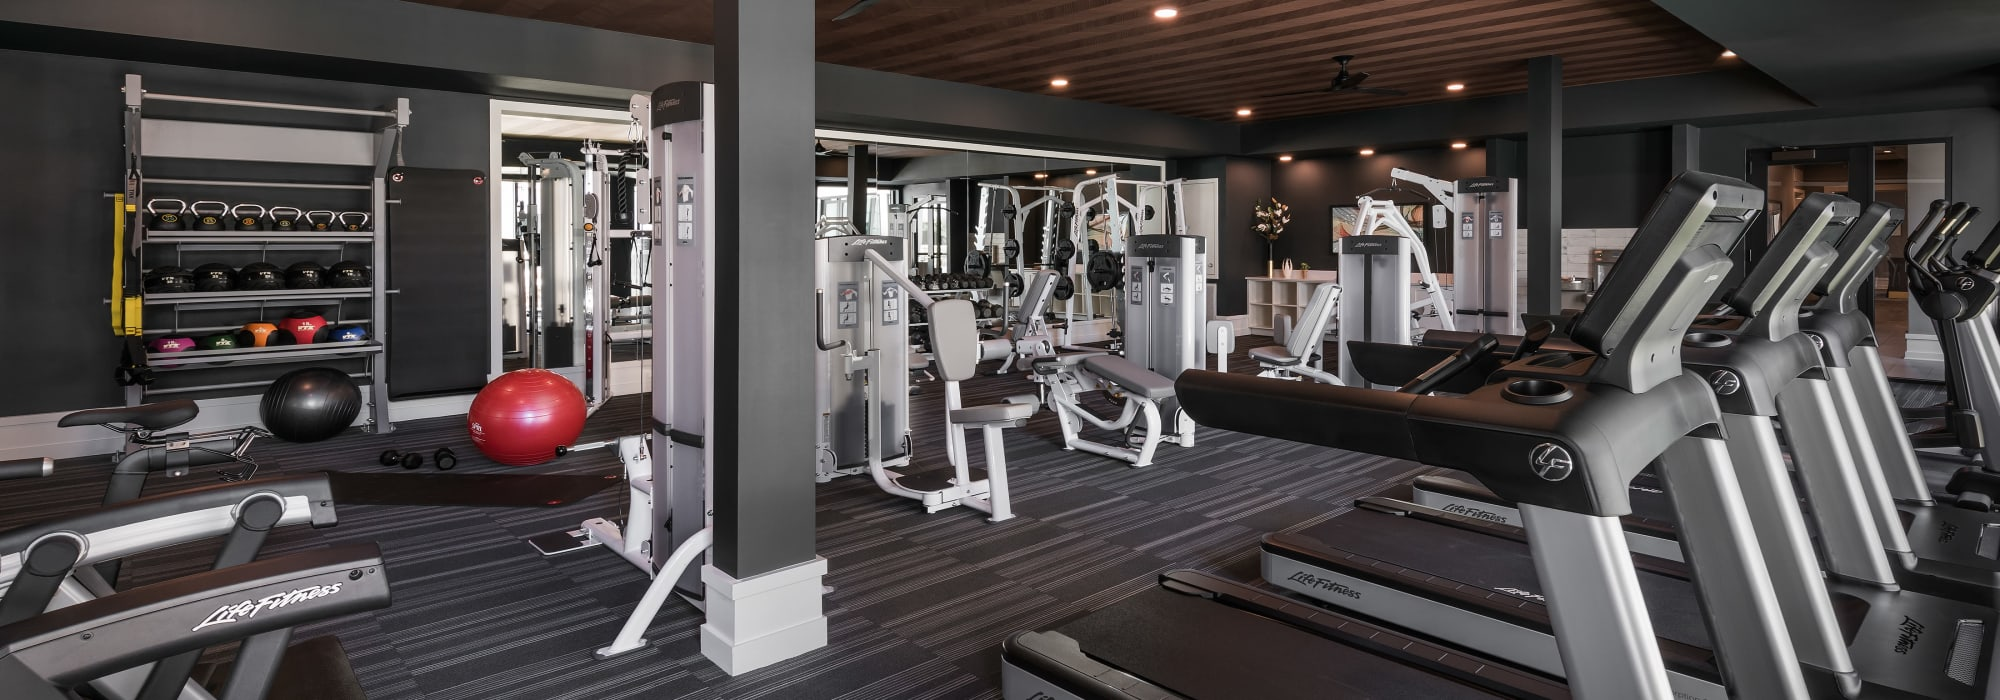 Resident fitness center with equipment at The Astor at Osborn in Phoenix, Arizona